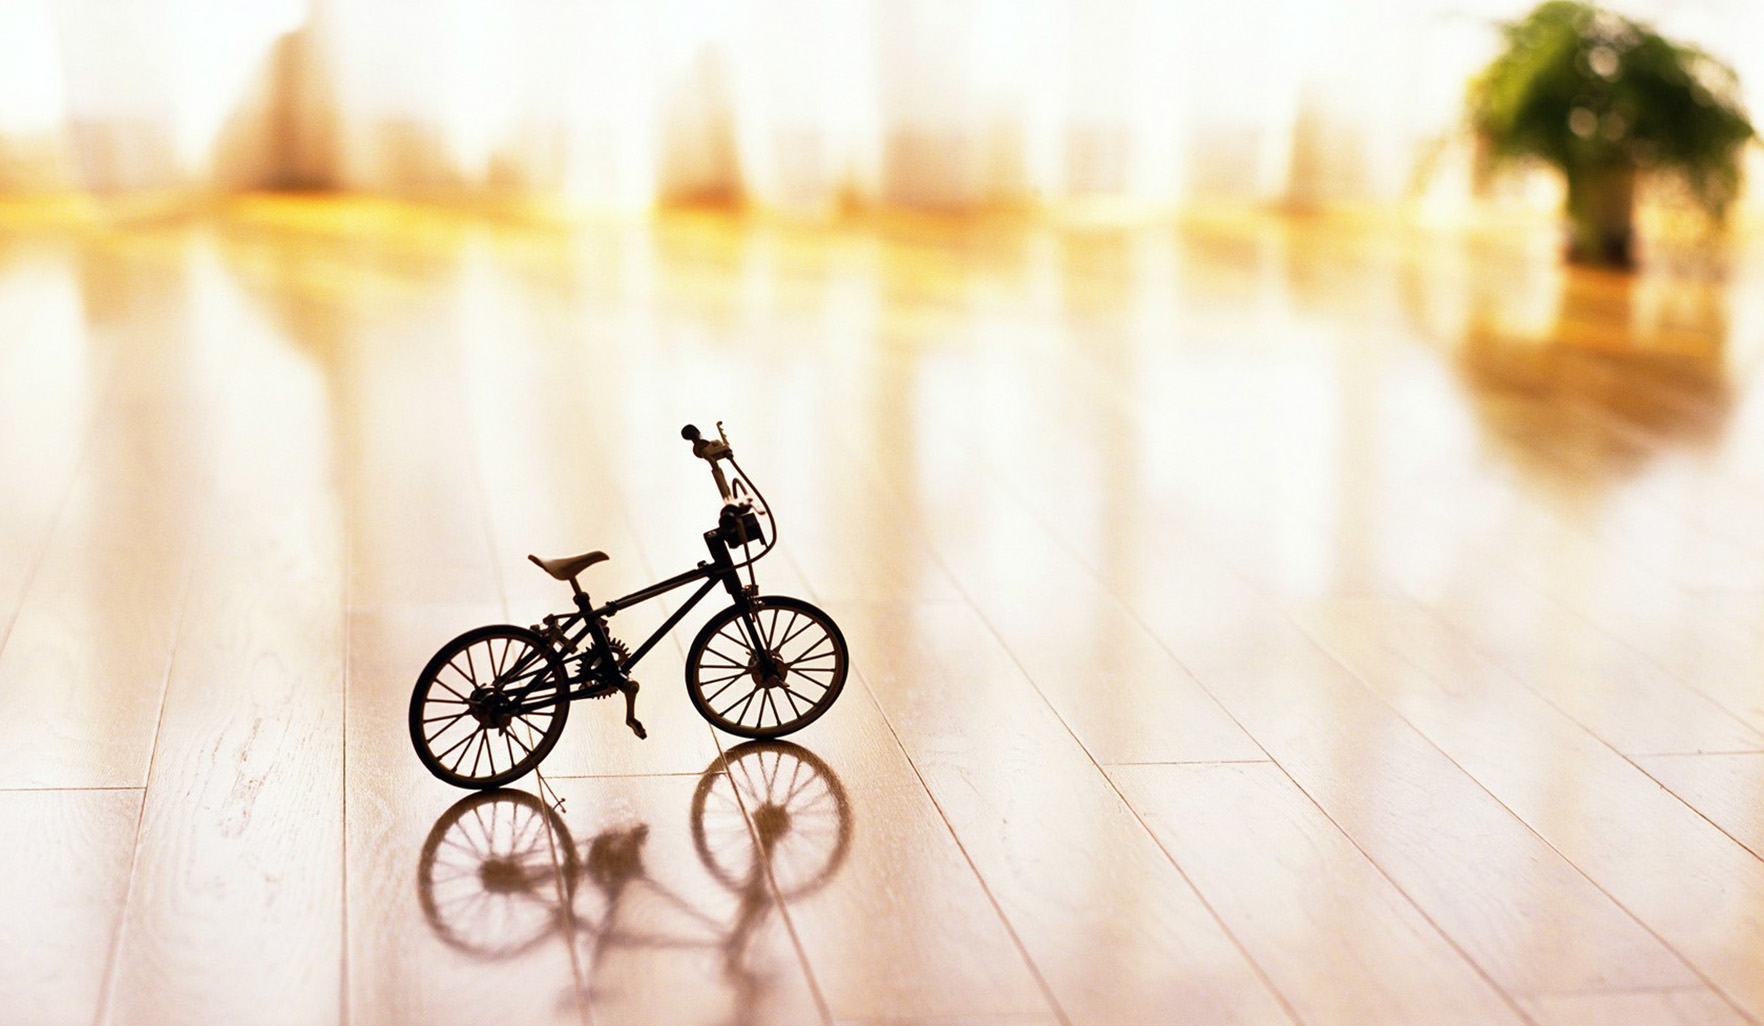 Cute Babies Wallpapers Hd Download Mini Bicycles On The Table Wallpapers Hd Desktop And